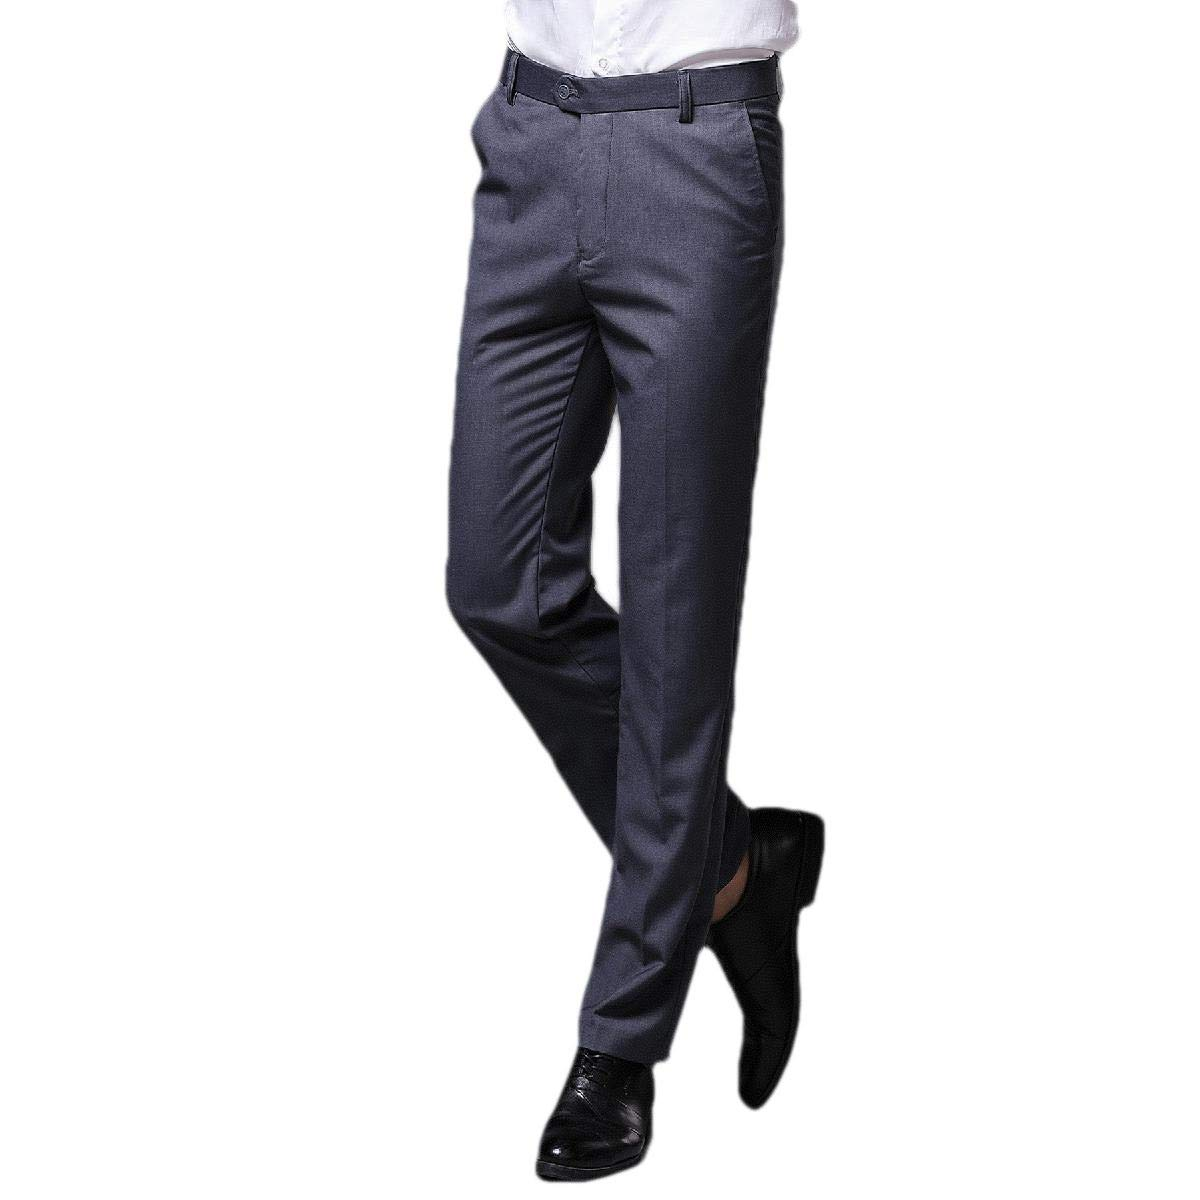 AngelSpace Mens High Waist Sport Thin No-Iron Flat-Front Plain Front Pant